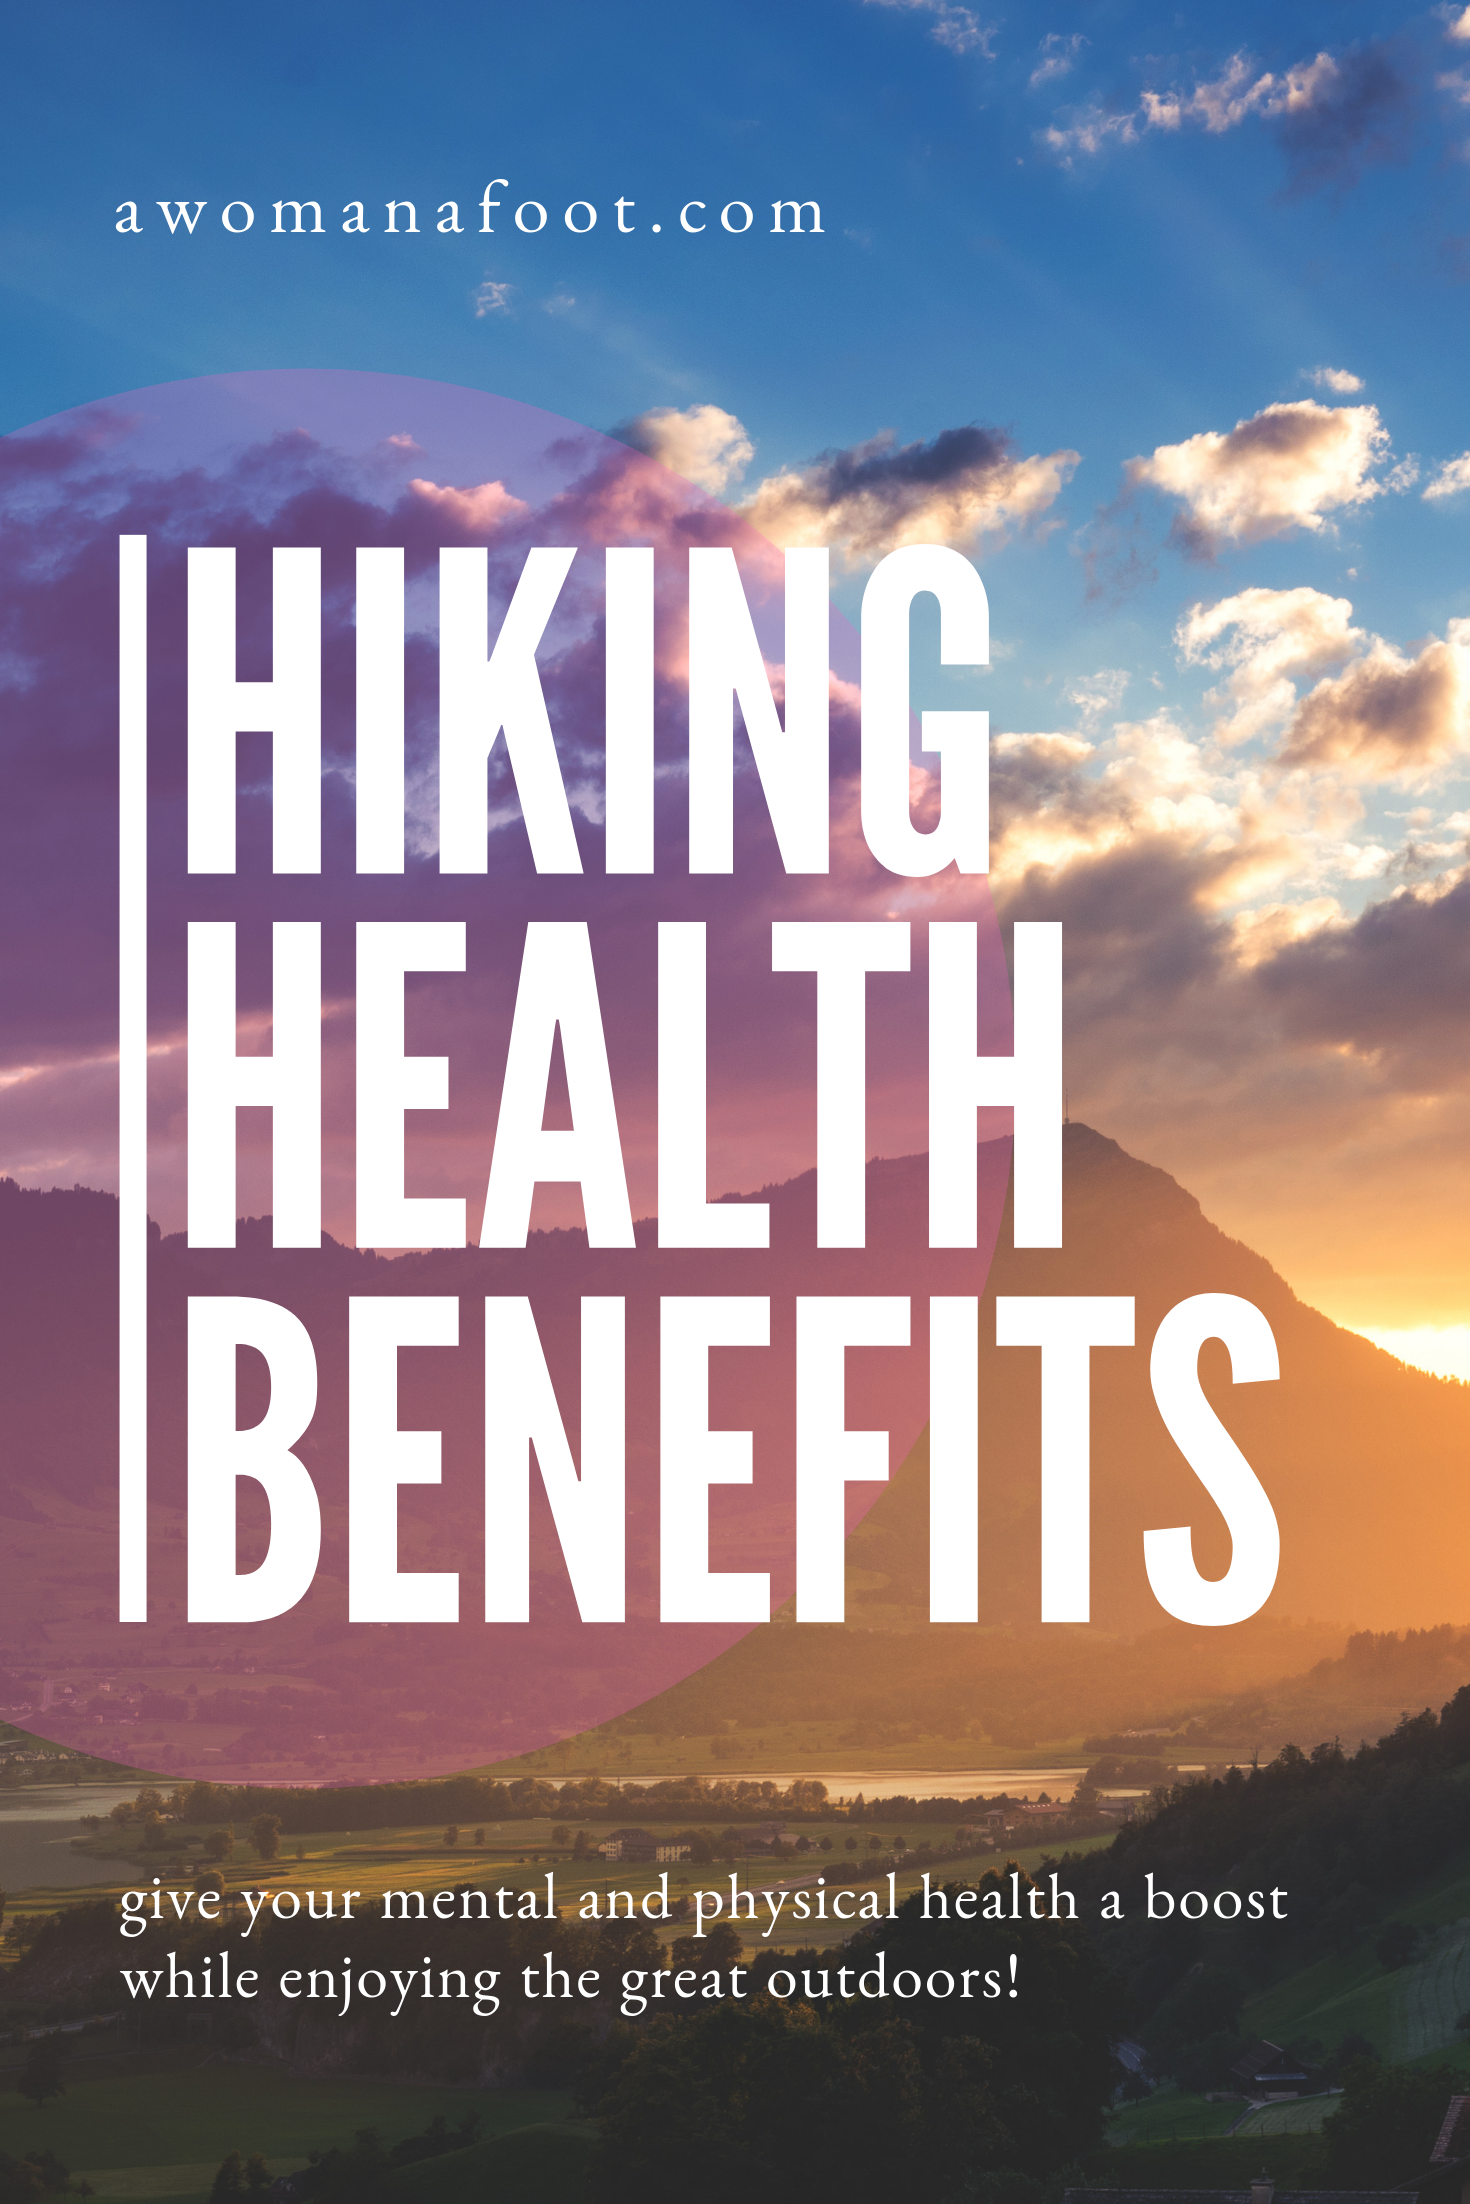 Lean all the awesome hiking benefits backed by science! Hit the trails today to boost your mental and physical health - and enjoy the Outdoors at the same time! awomanafoot.com | #Hiking and #Camping | #MentalHealth | #Anxiety | #Fitness | #Wellness | #Health #Adventure #Backpacking #Science #Medicine #Outdoors